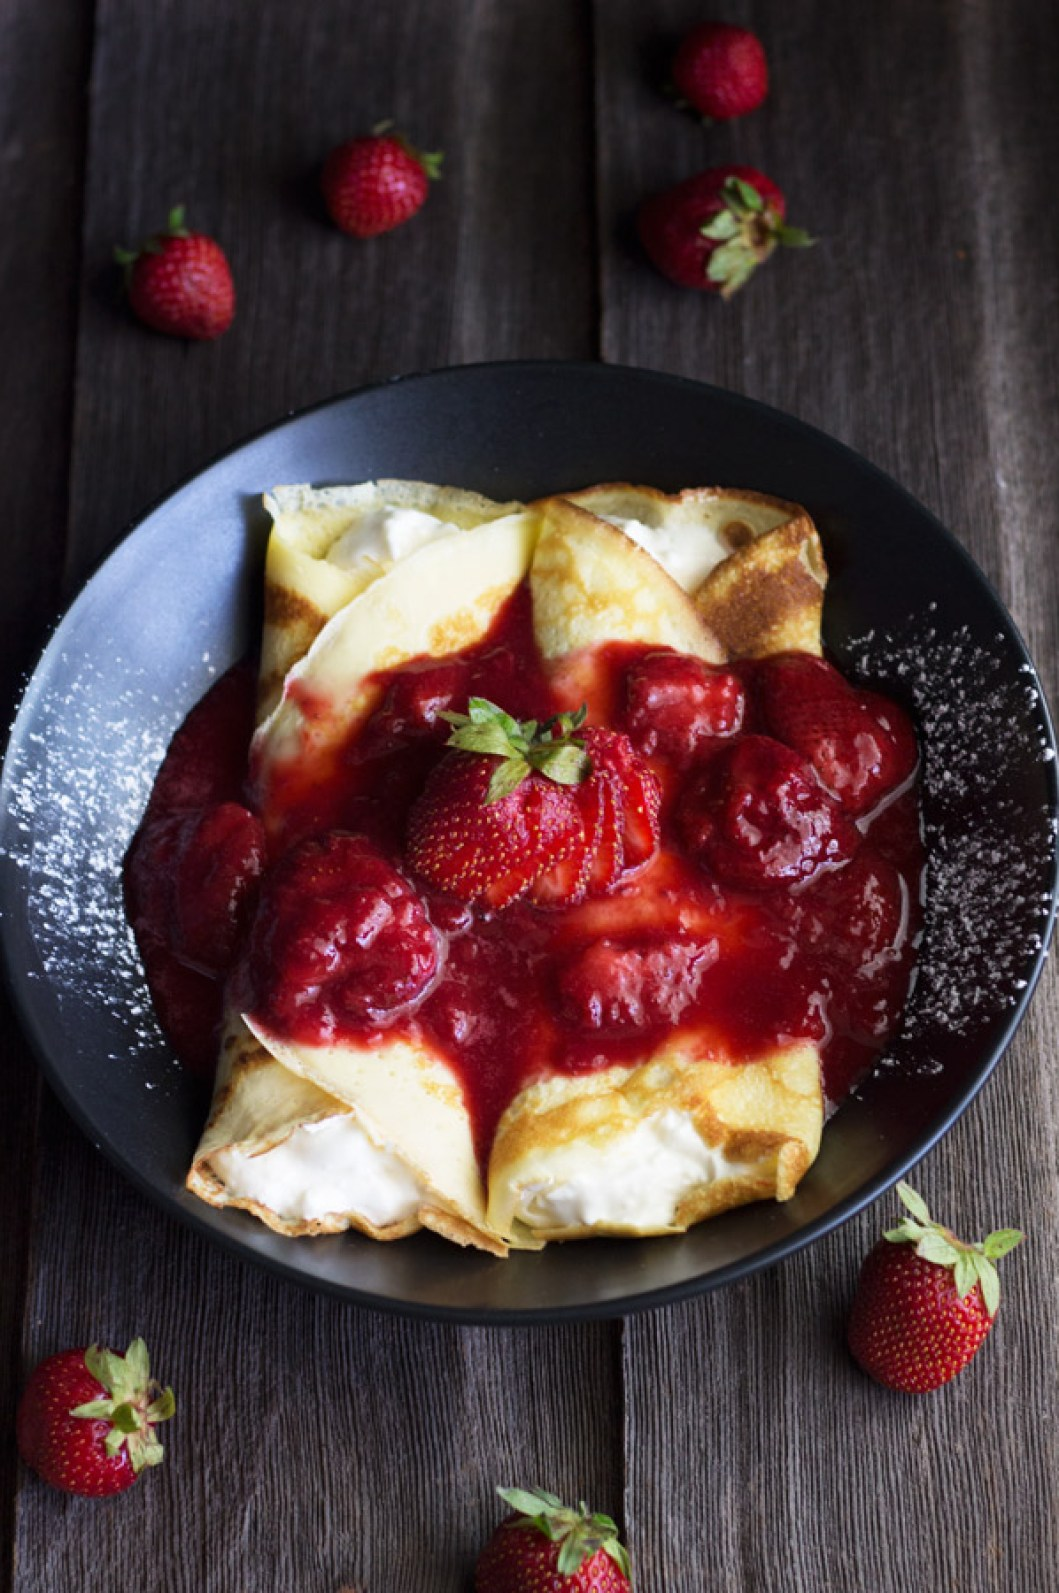 Strawberry Cream Filled Crepes are like a very thin pancake filled with cream and topped with strawberry topping. They are easy to make and yummy to eat. | www.butterandthings.com